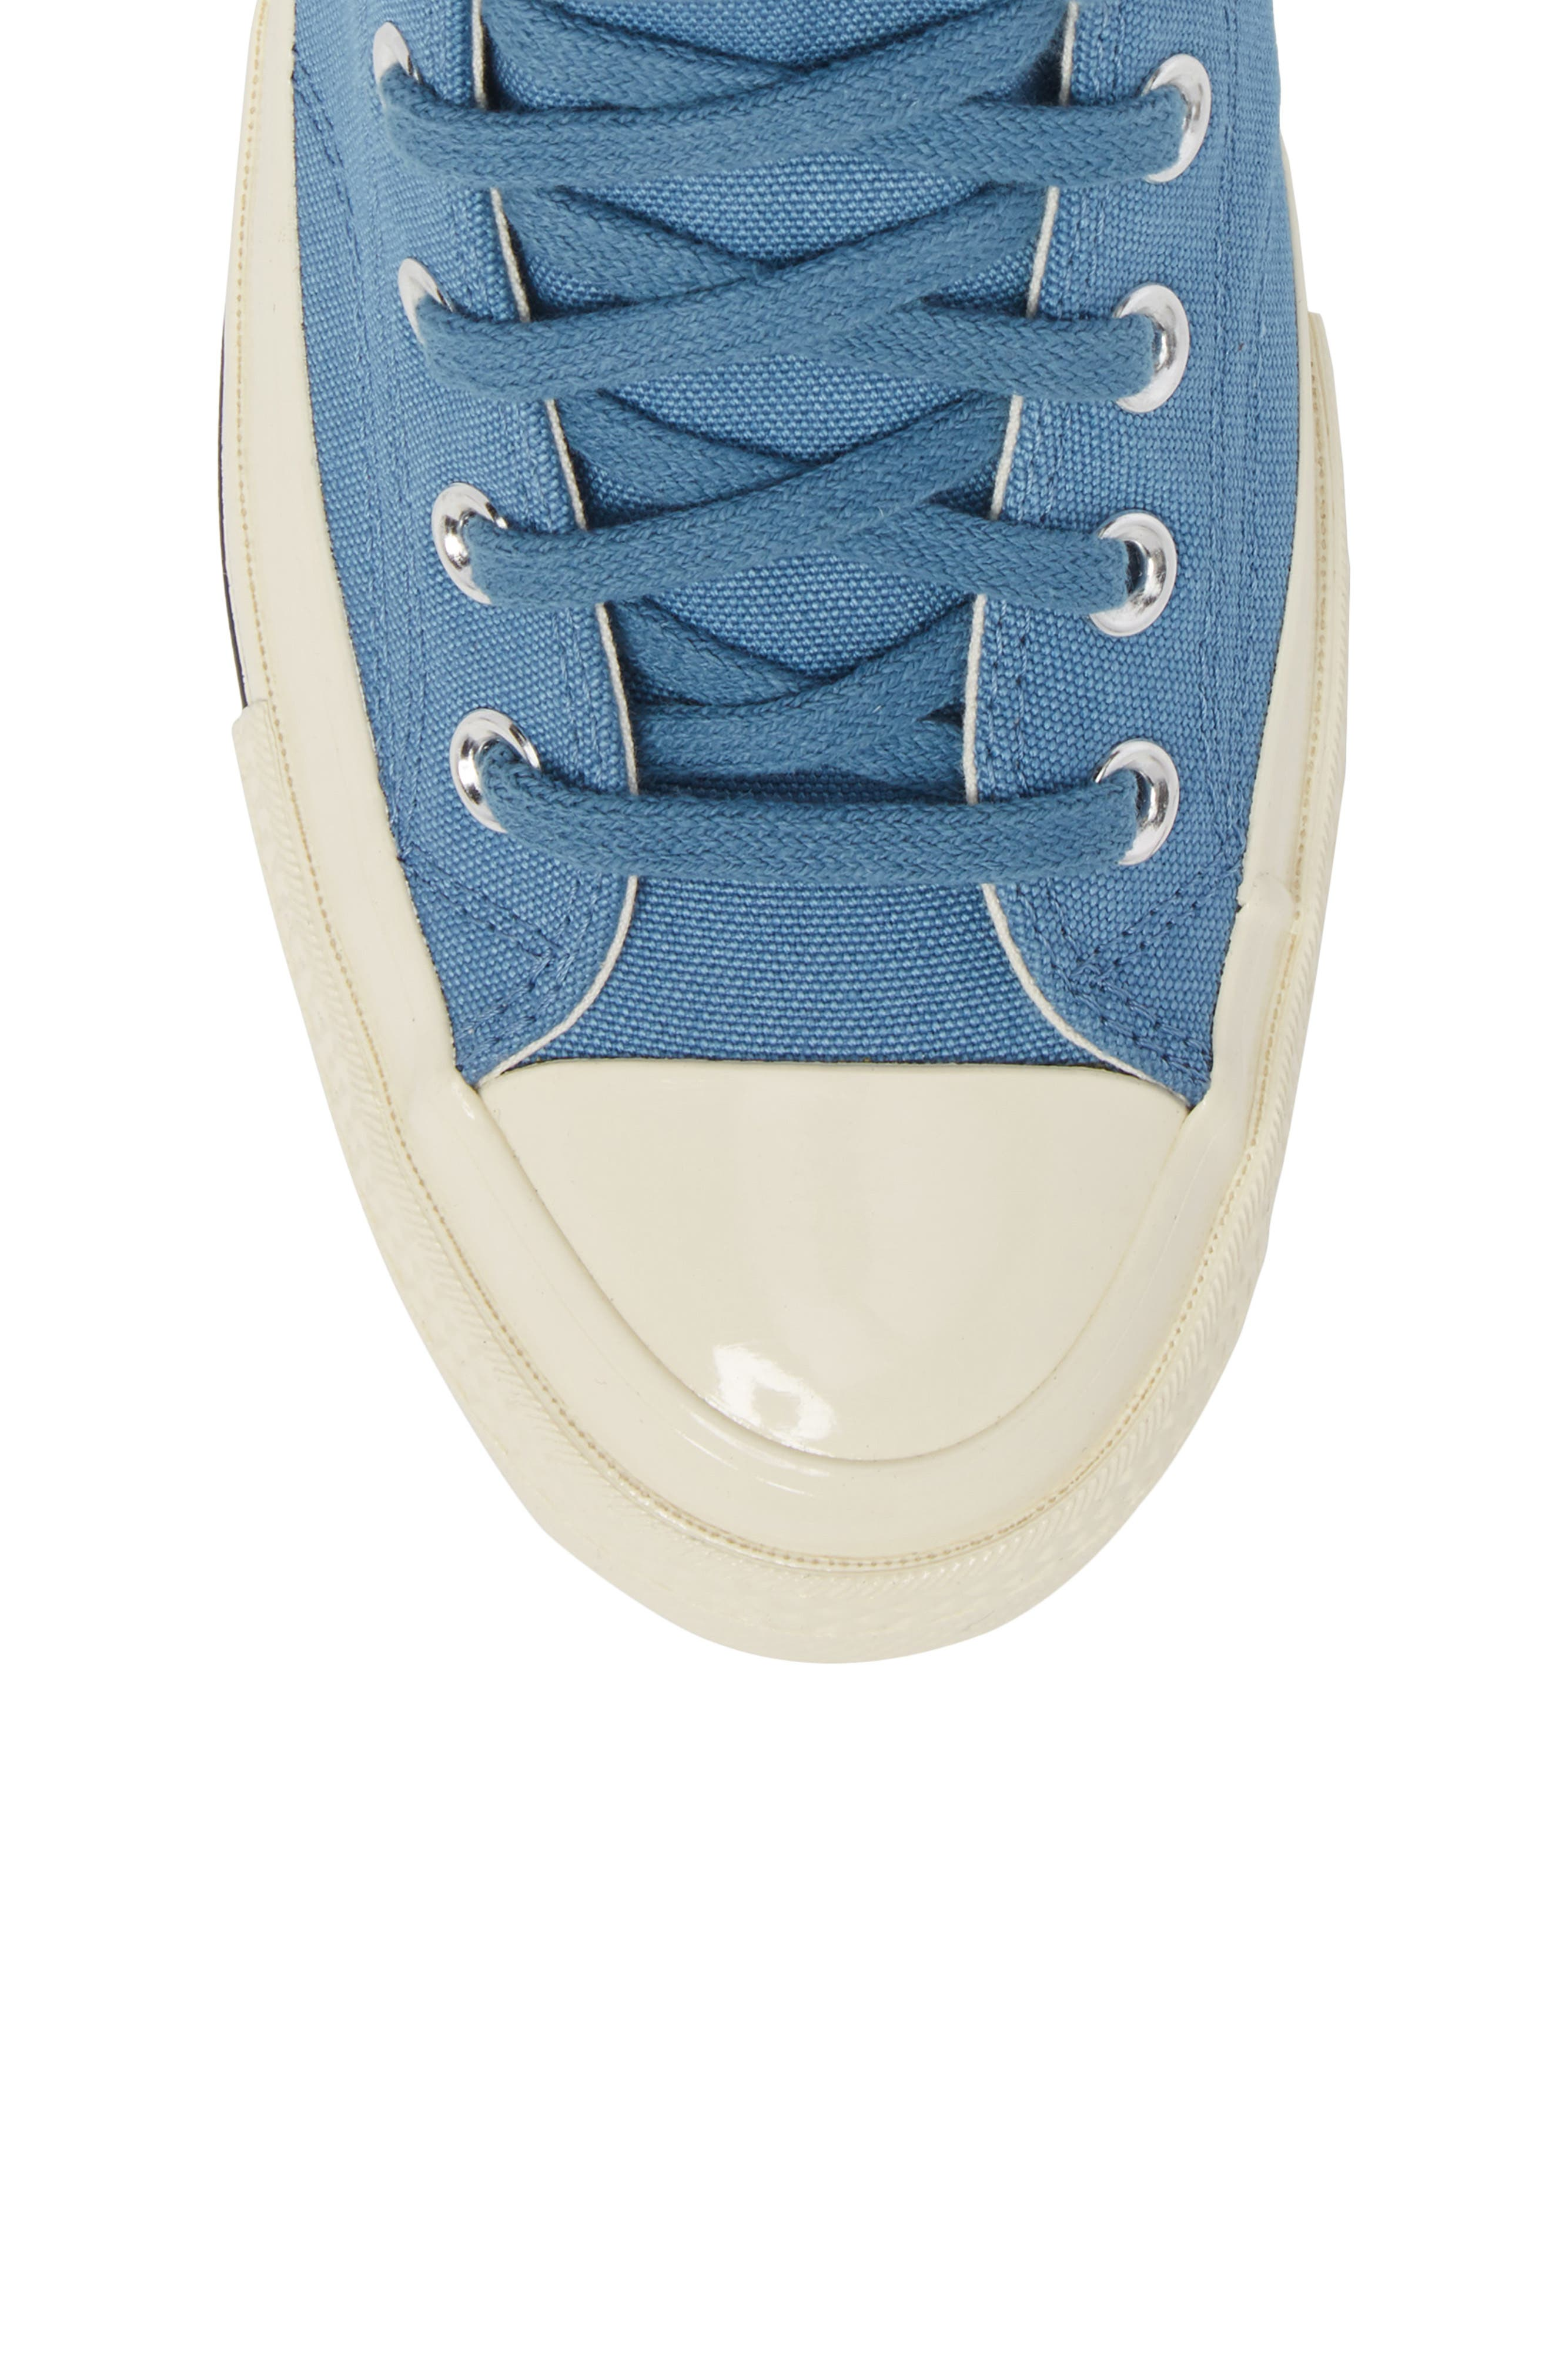 Chuck Taylor<sup>®</sup> All Star<sup>®</sup> '70s Heritage High Top Sneaker,                             Alternate thumbnail 5, color,                             Aegean Storm